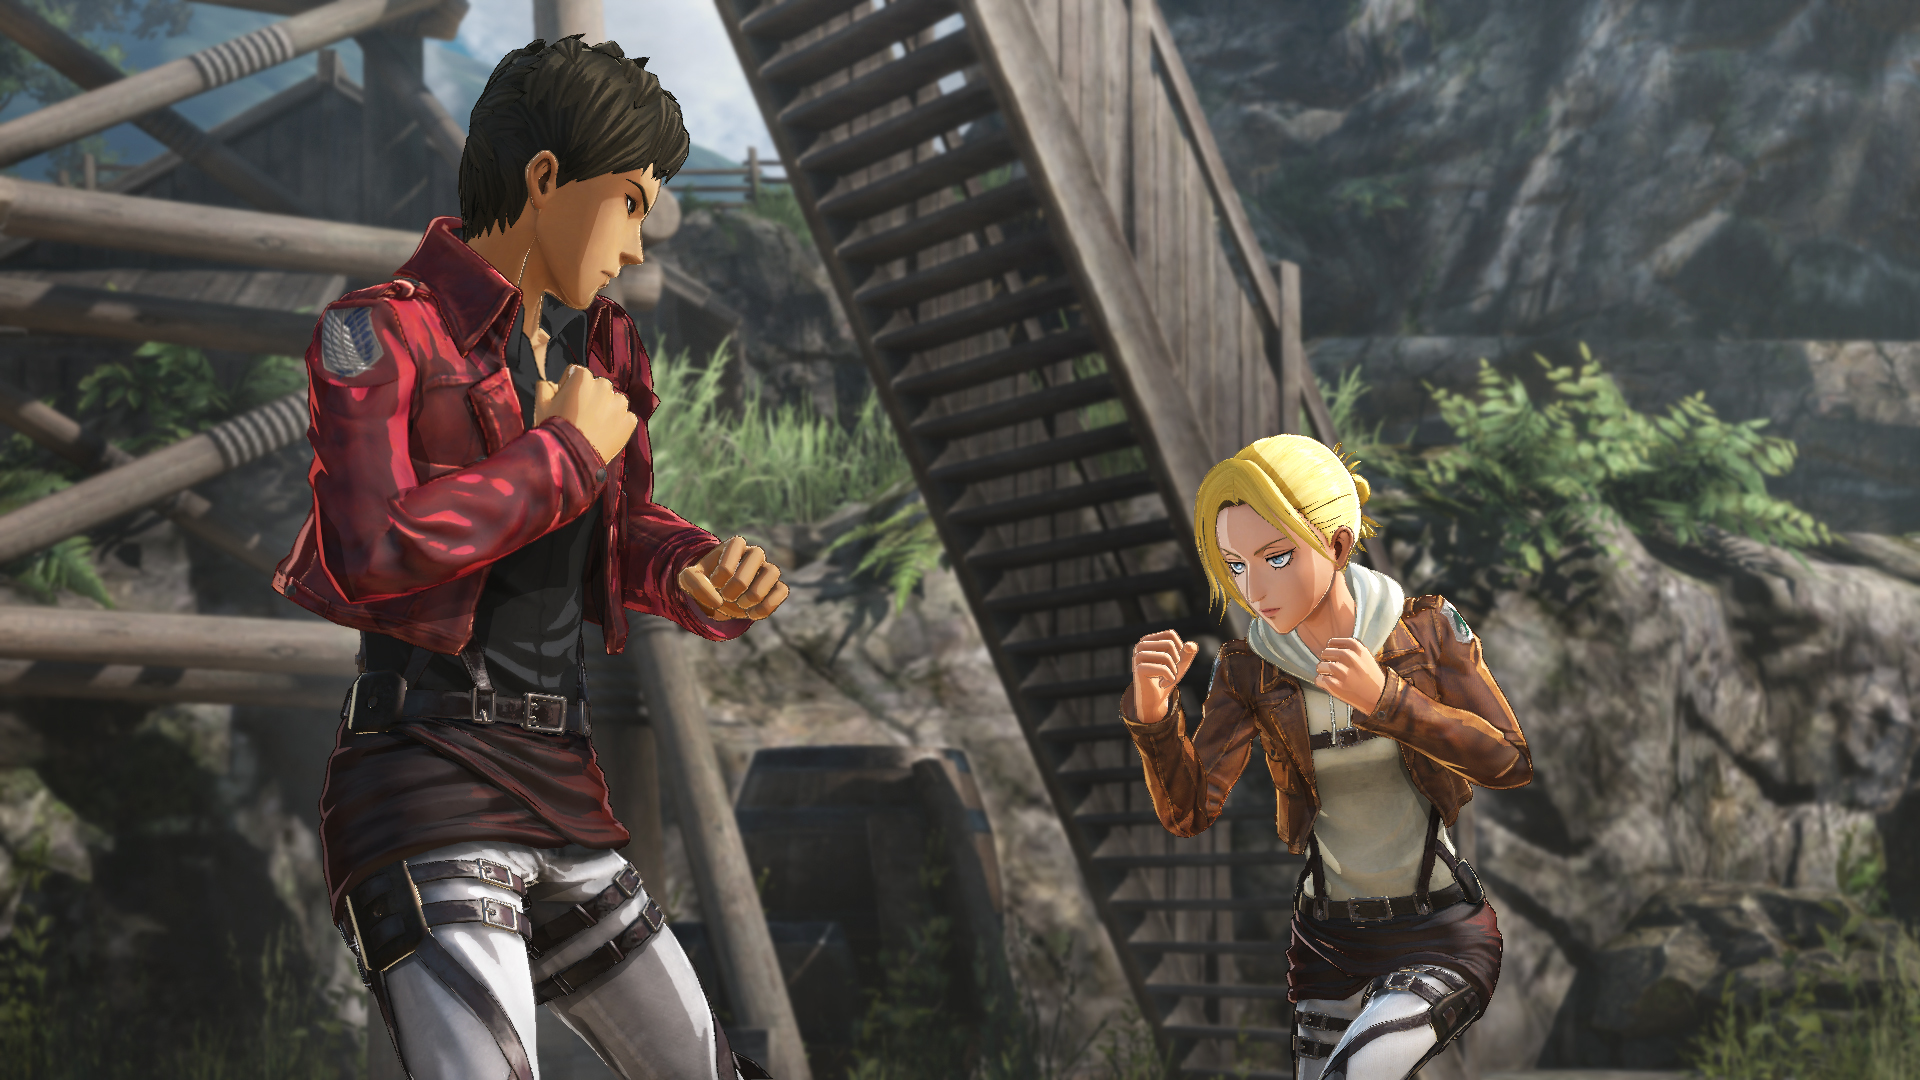 Attack On Titan 2 Gets New Details On Character Creation